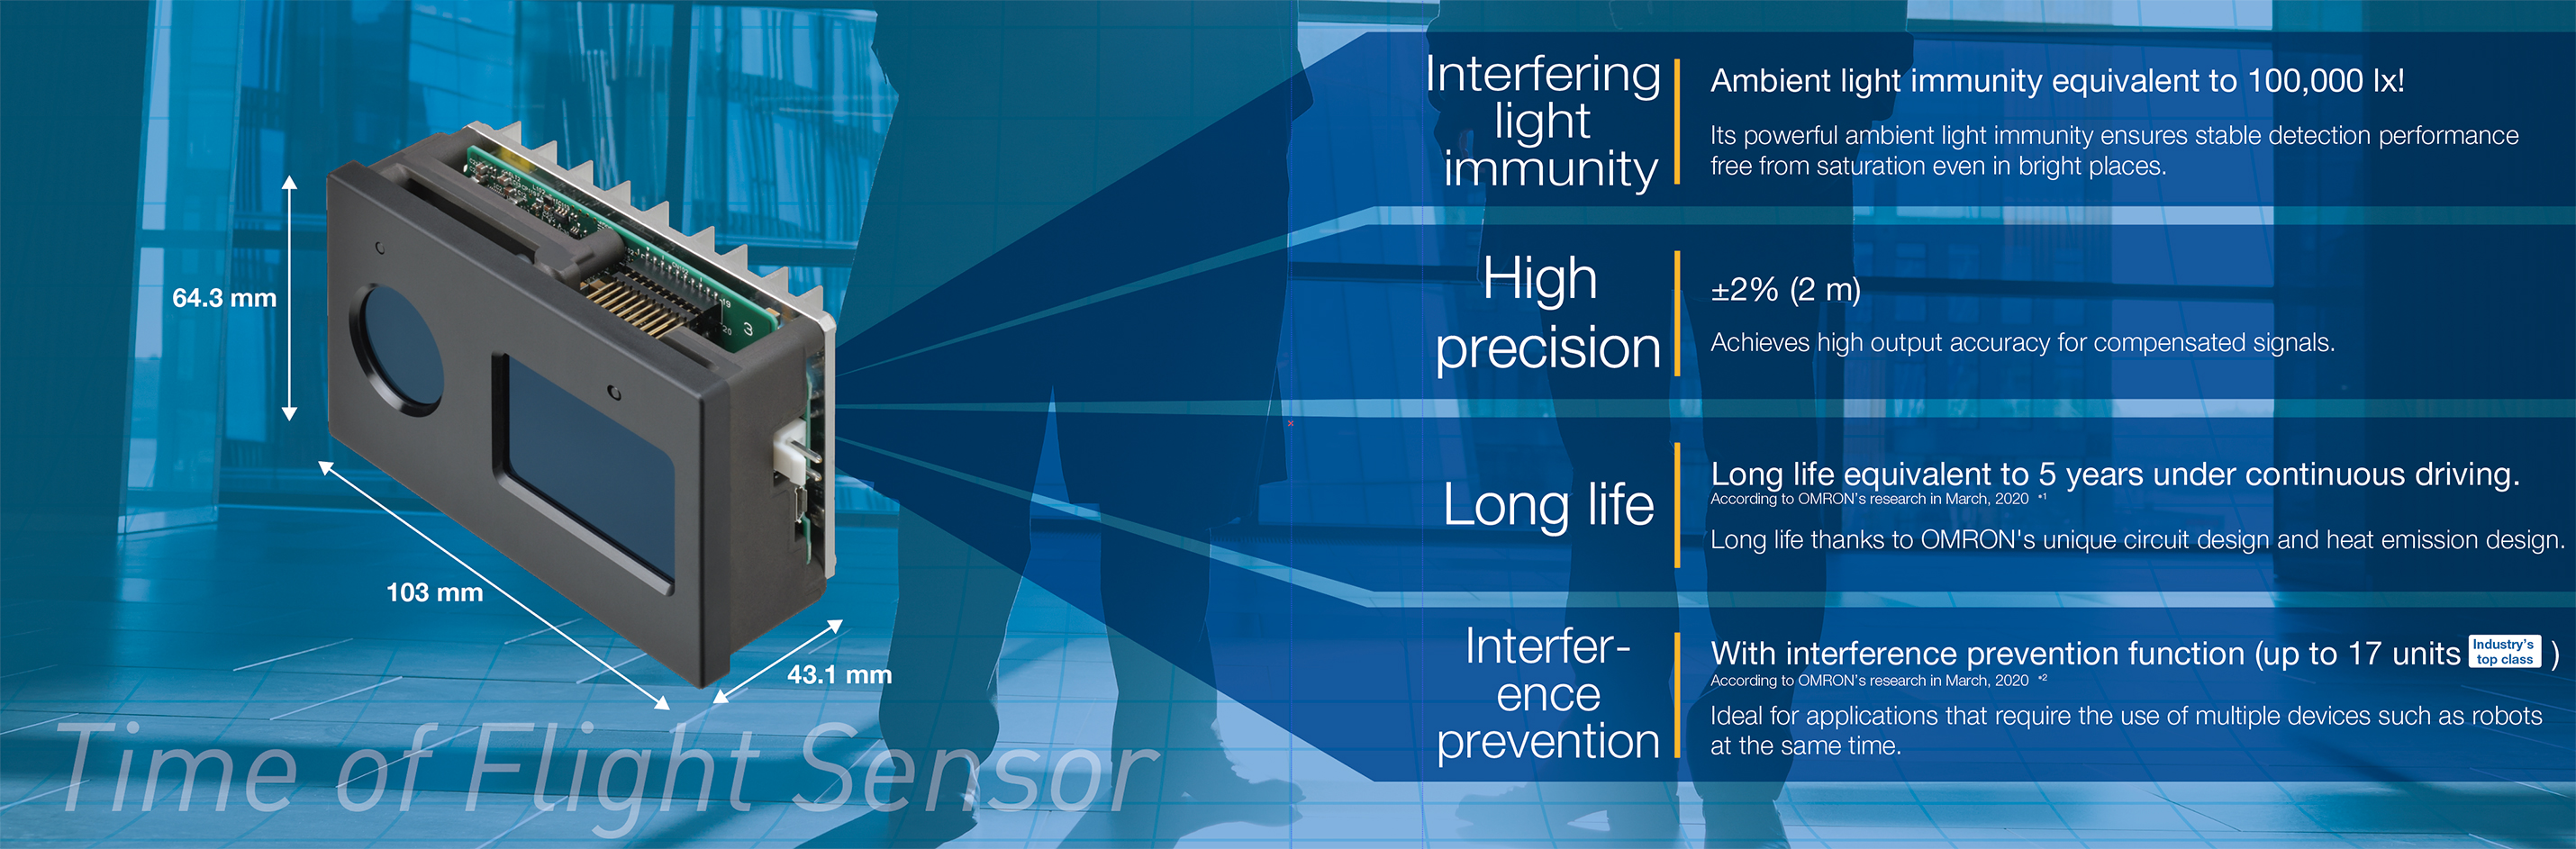 (Interfering light immunity) Ambient light immunity equivalent to 100,000 lx! Its powerful ambient light immunity ensures stable detection performance free from saturation even in bright places. (High precision) ±2% (2 m) Achieves high output accuracy for compensated signals.(Long life) Long life equivalent to 5 years under continuous driving. According to OMRON's research in March, 2020*1 Long life thanks to OMRON's unique circuit design and heat emission design. (Interference prevention) With interference prevention function (up to 17 units Industry's top class) According to OMRON's research in March, 2020*2 Ideal for applications that require the use of multiple devices such as robots at the same time.